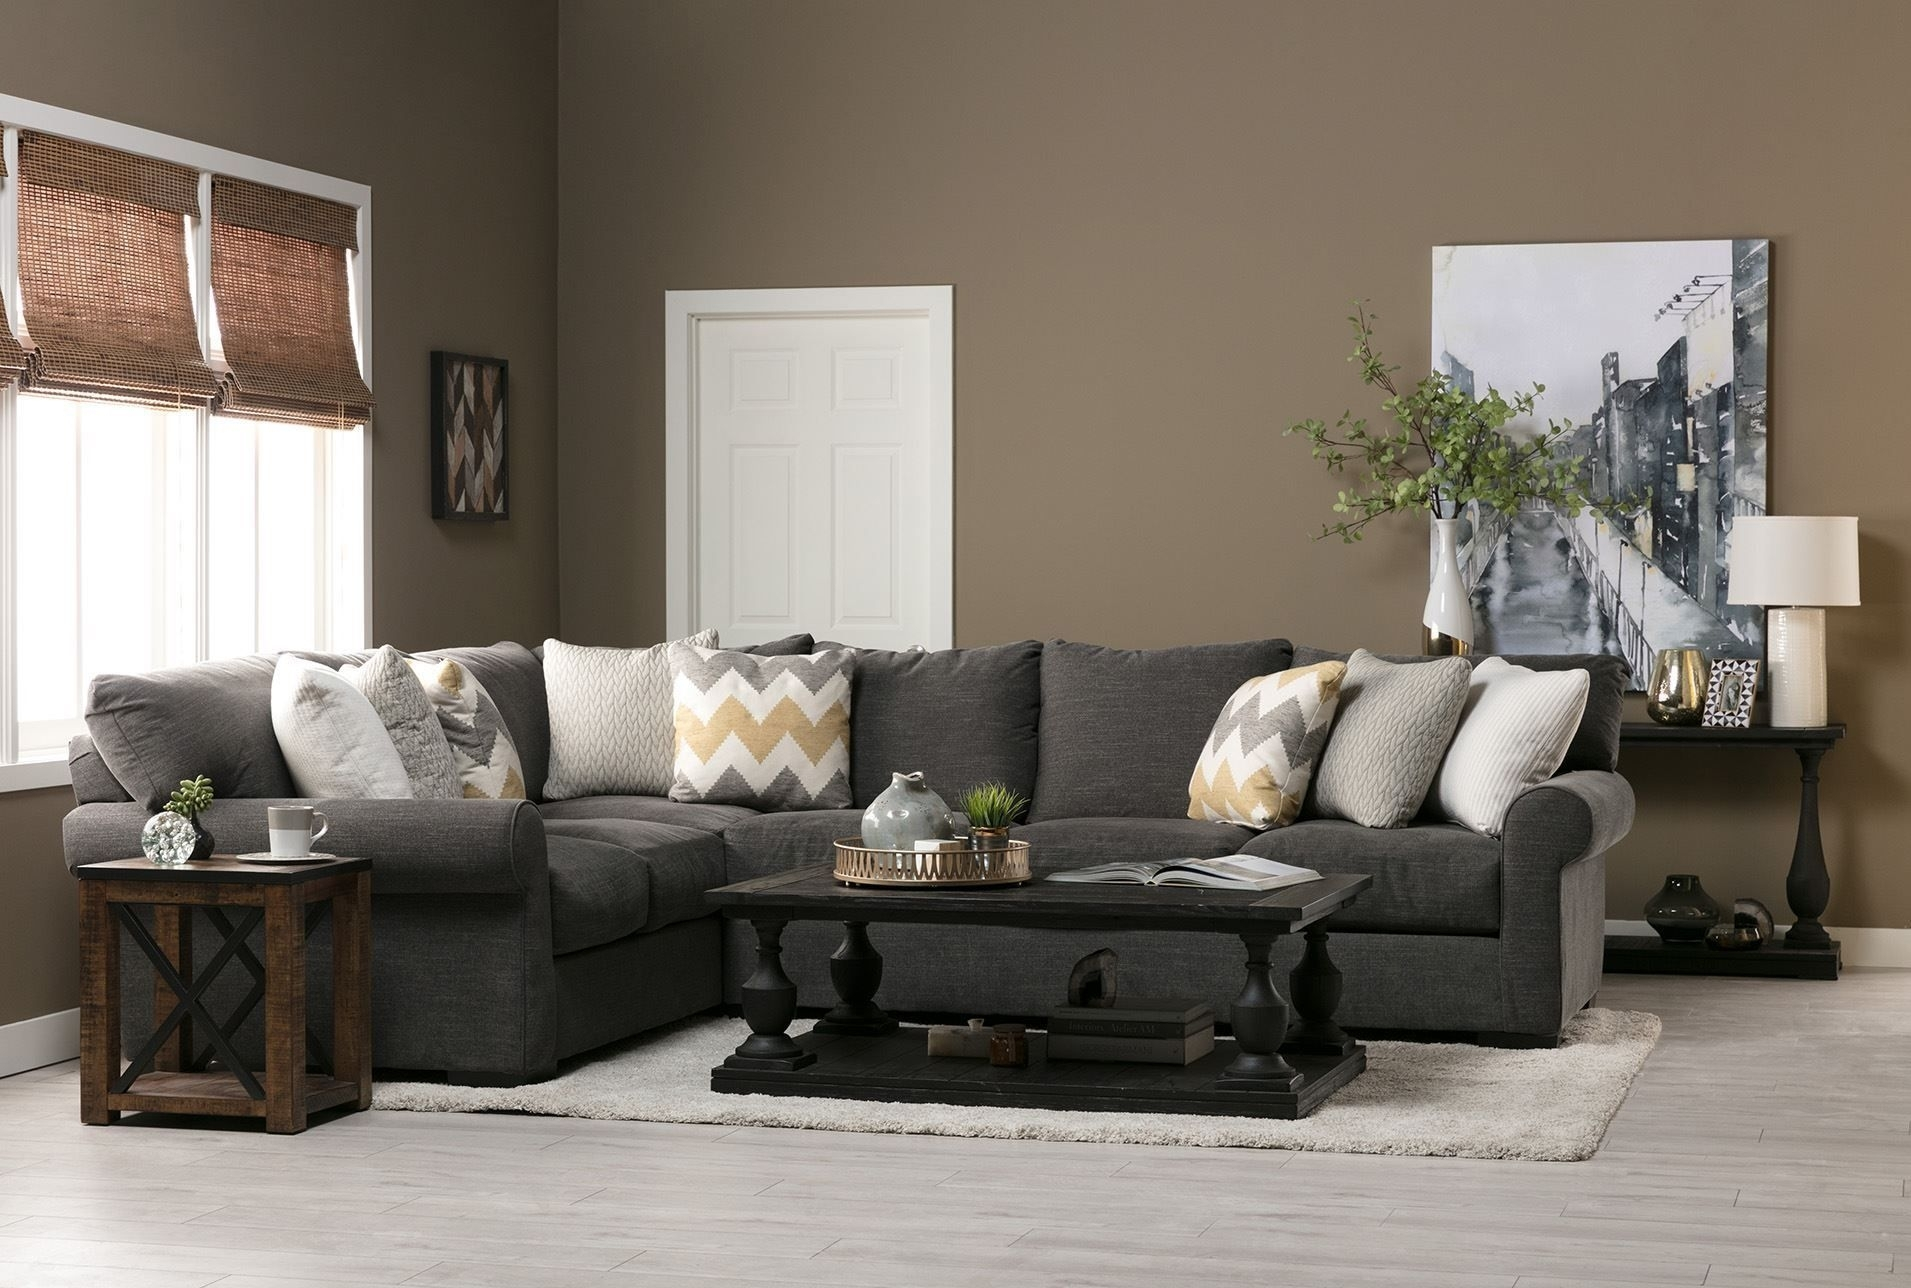 Aurora 2 Piece Sectional | Home Decor | Pinterest | Transitional Within Aurora 2 Piece Sectionals (View 2 of 25)